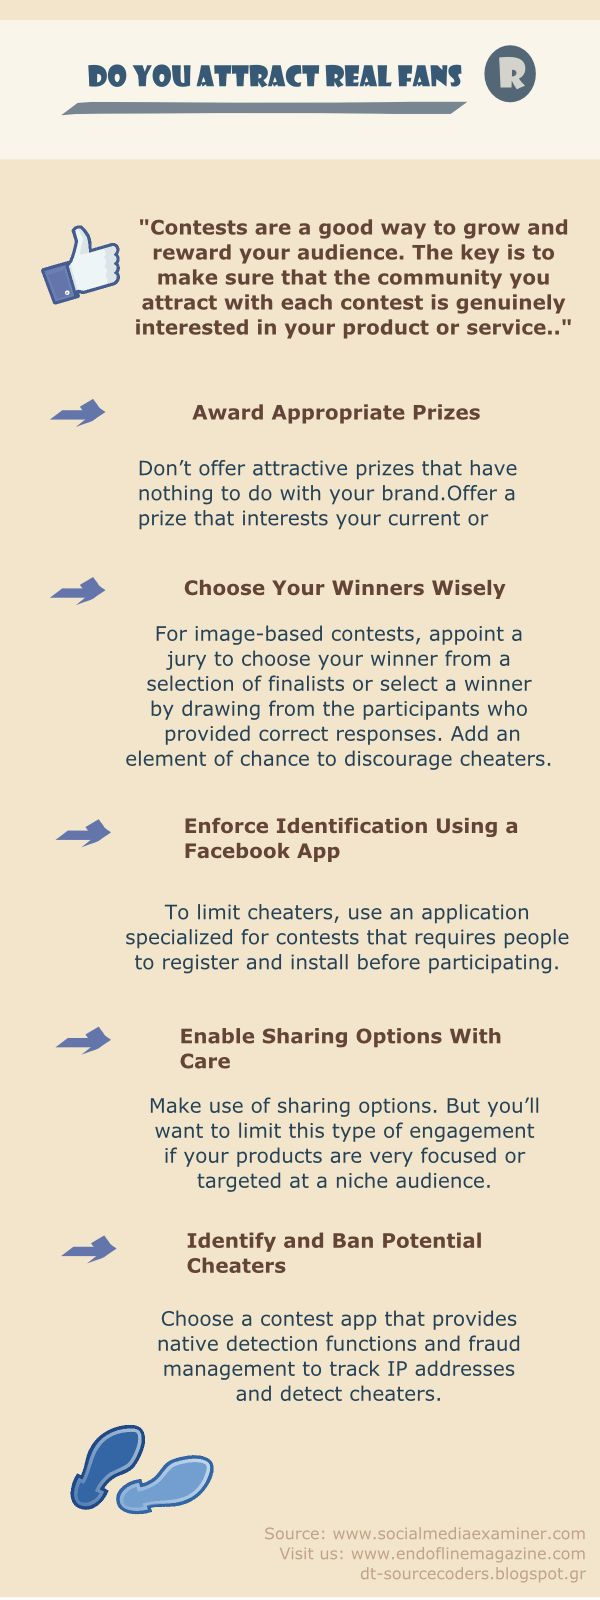 Infographic: Do you attract real fans to your social media profile? | Social Media, Software, Web on End of Line Magazine